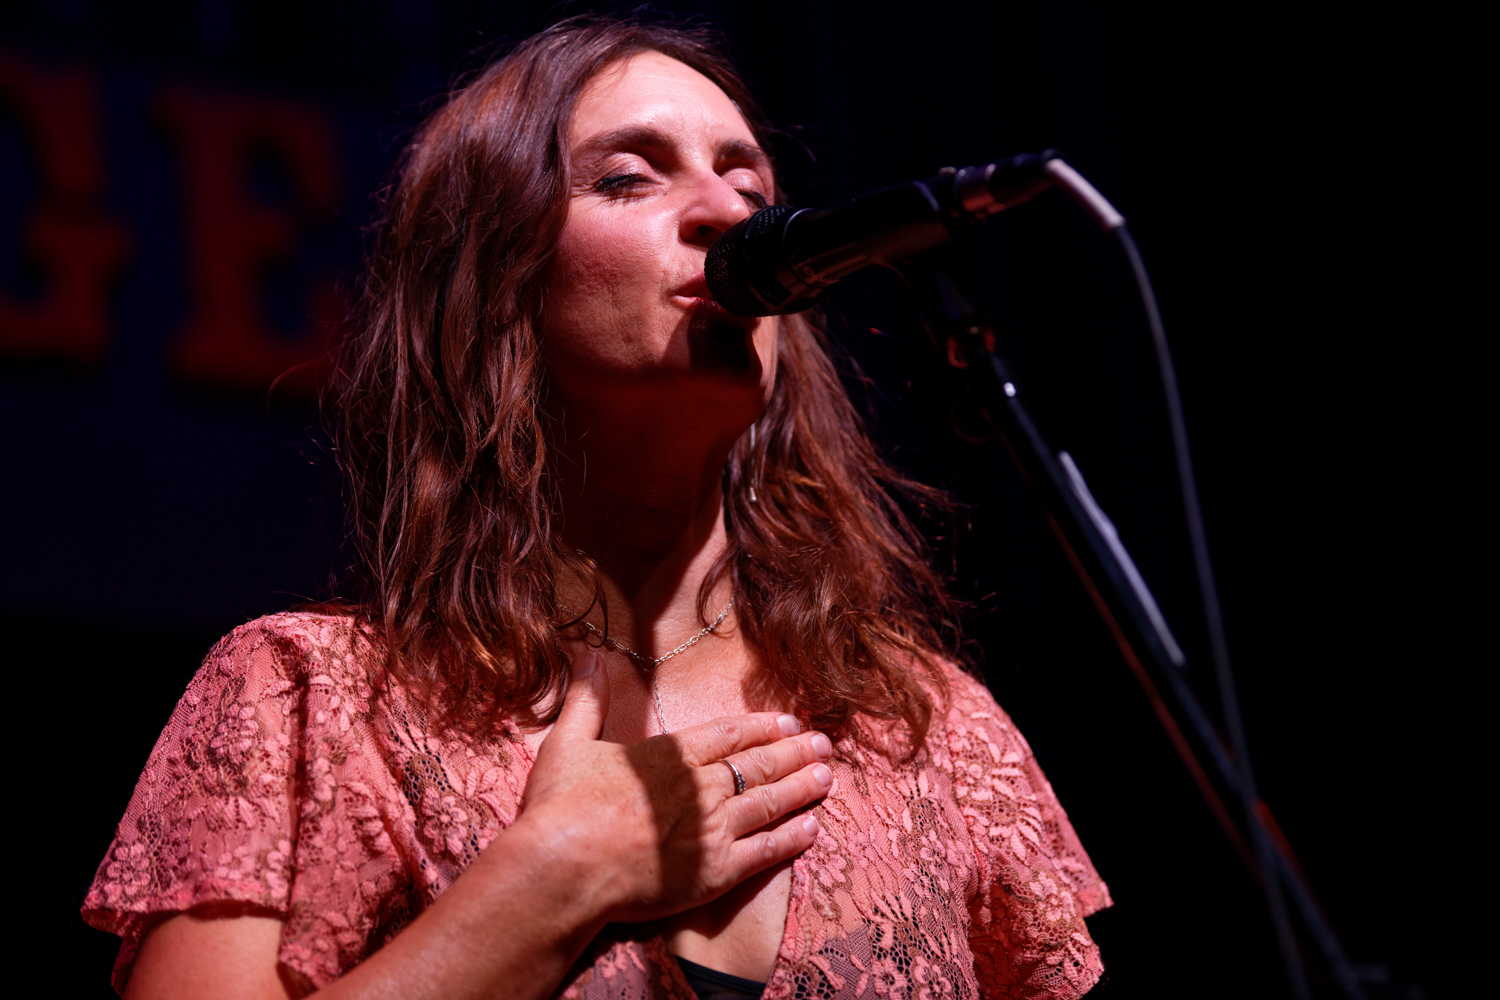 20190801 167 Freight & Salvage - The Waifs by Jon Bauer.jpg